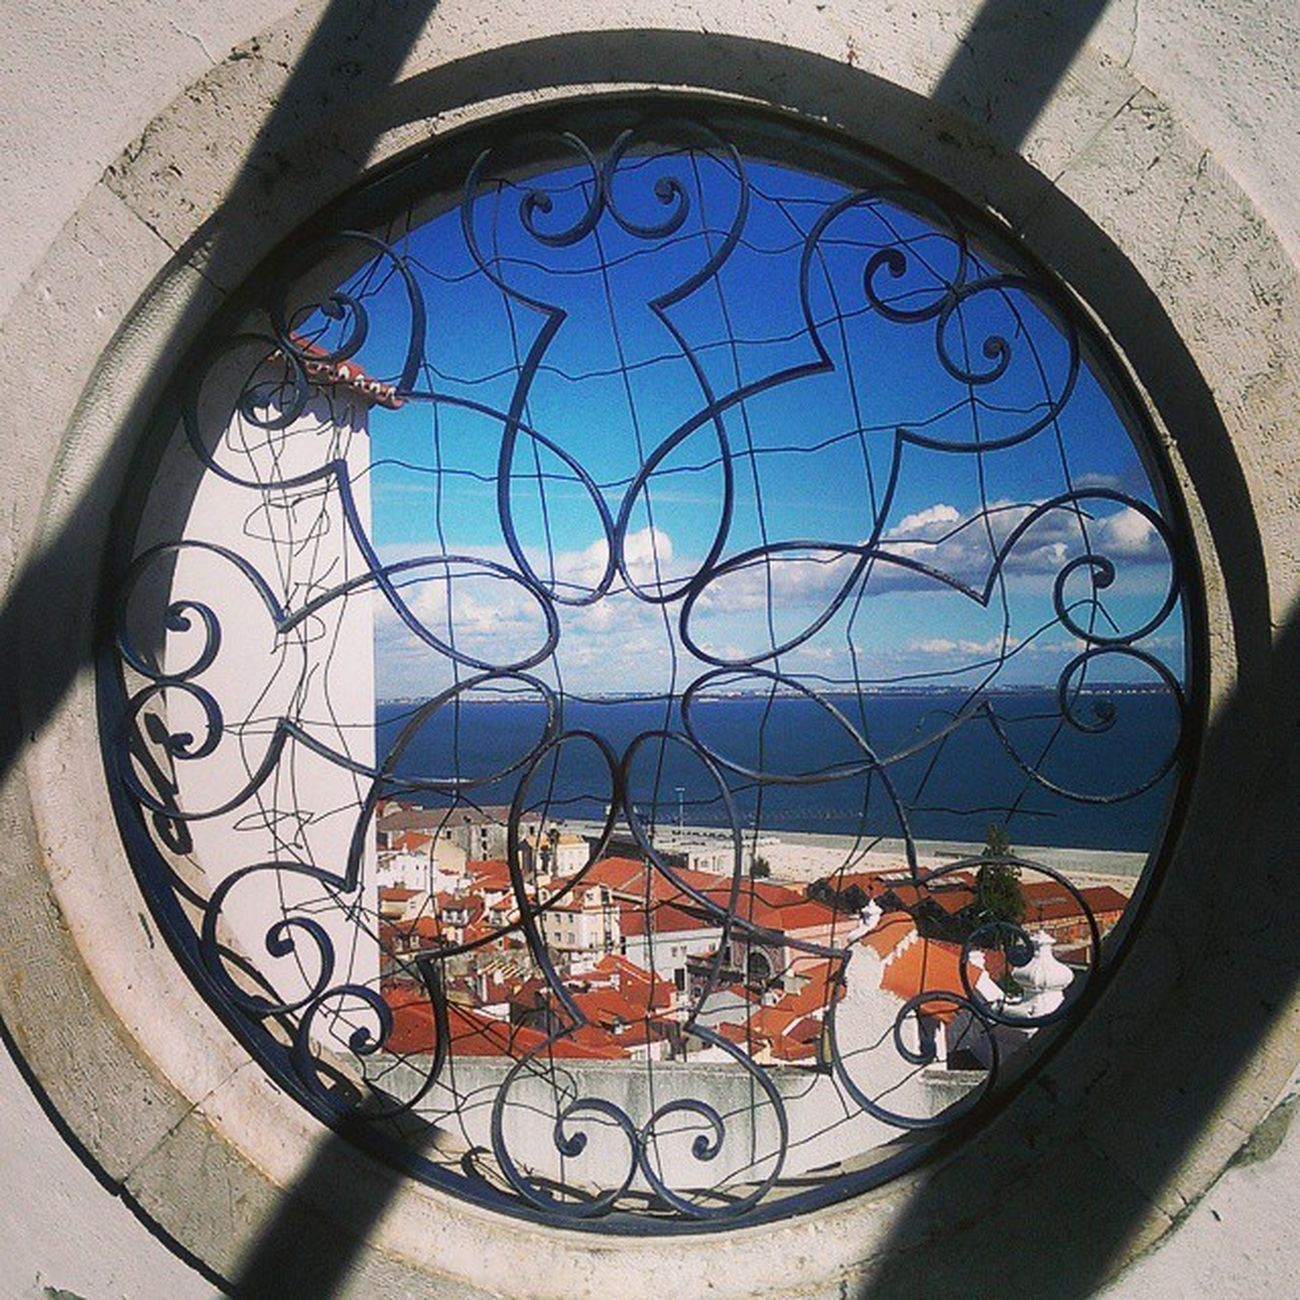 La belle vue ? Beautifulview Lisboa Holidays Portugal withthebff